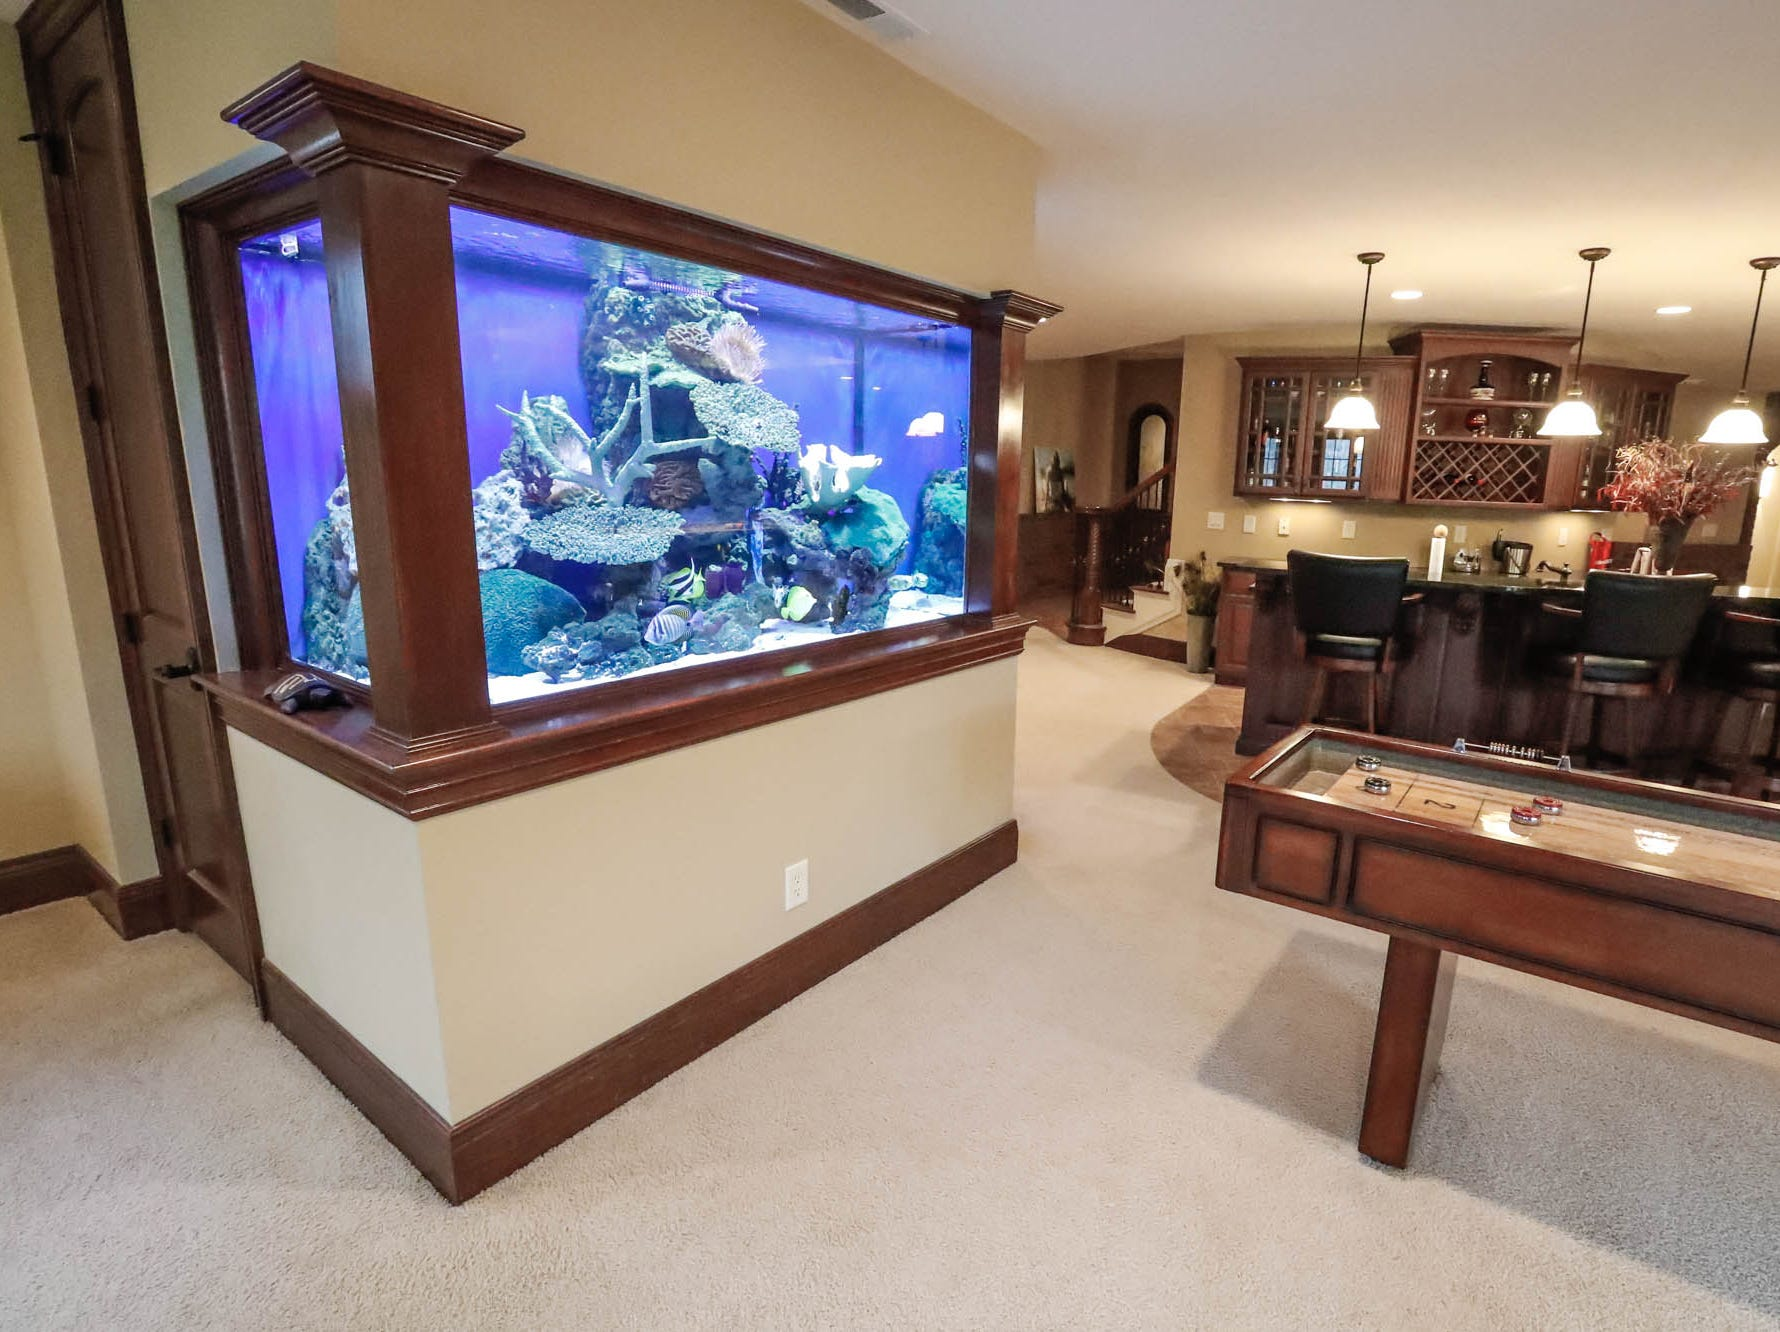 The basement of a traditional $2m home up for sale in Bargersville Ind., features a 500-gallon aquarium, shuffleboard table, bar, fireplace and home theatre room on Wednesday, Jan. 9, 2019. The home sits on 8.1 acres.